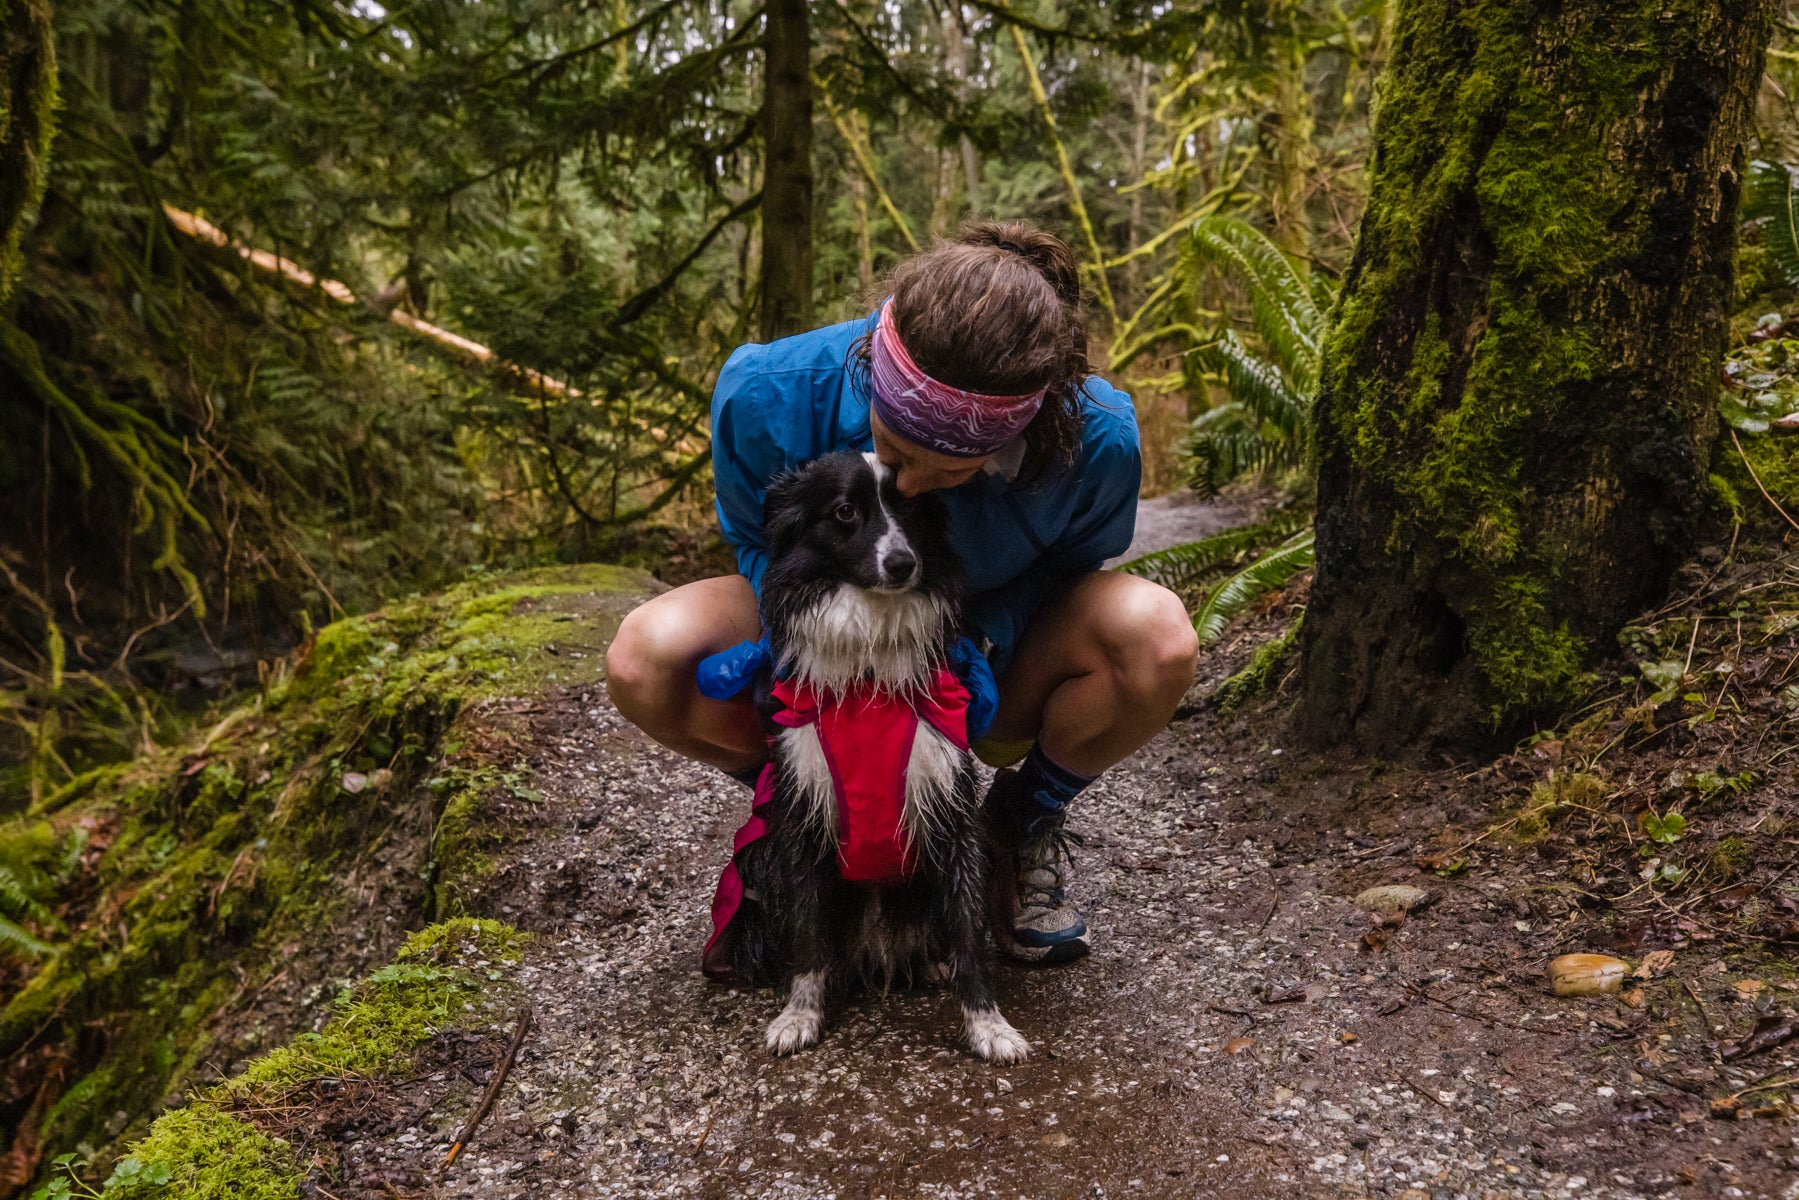 Krissy and her dog PD pause in the trail for a break.